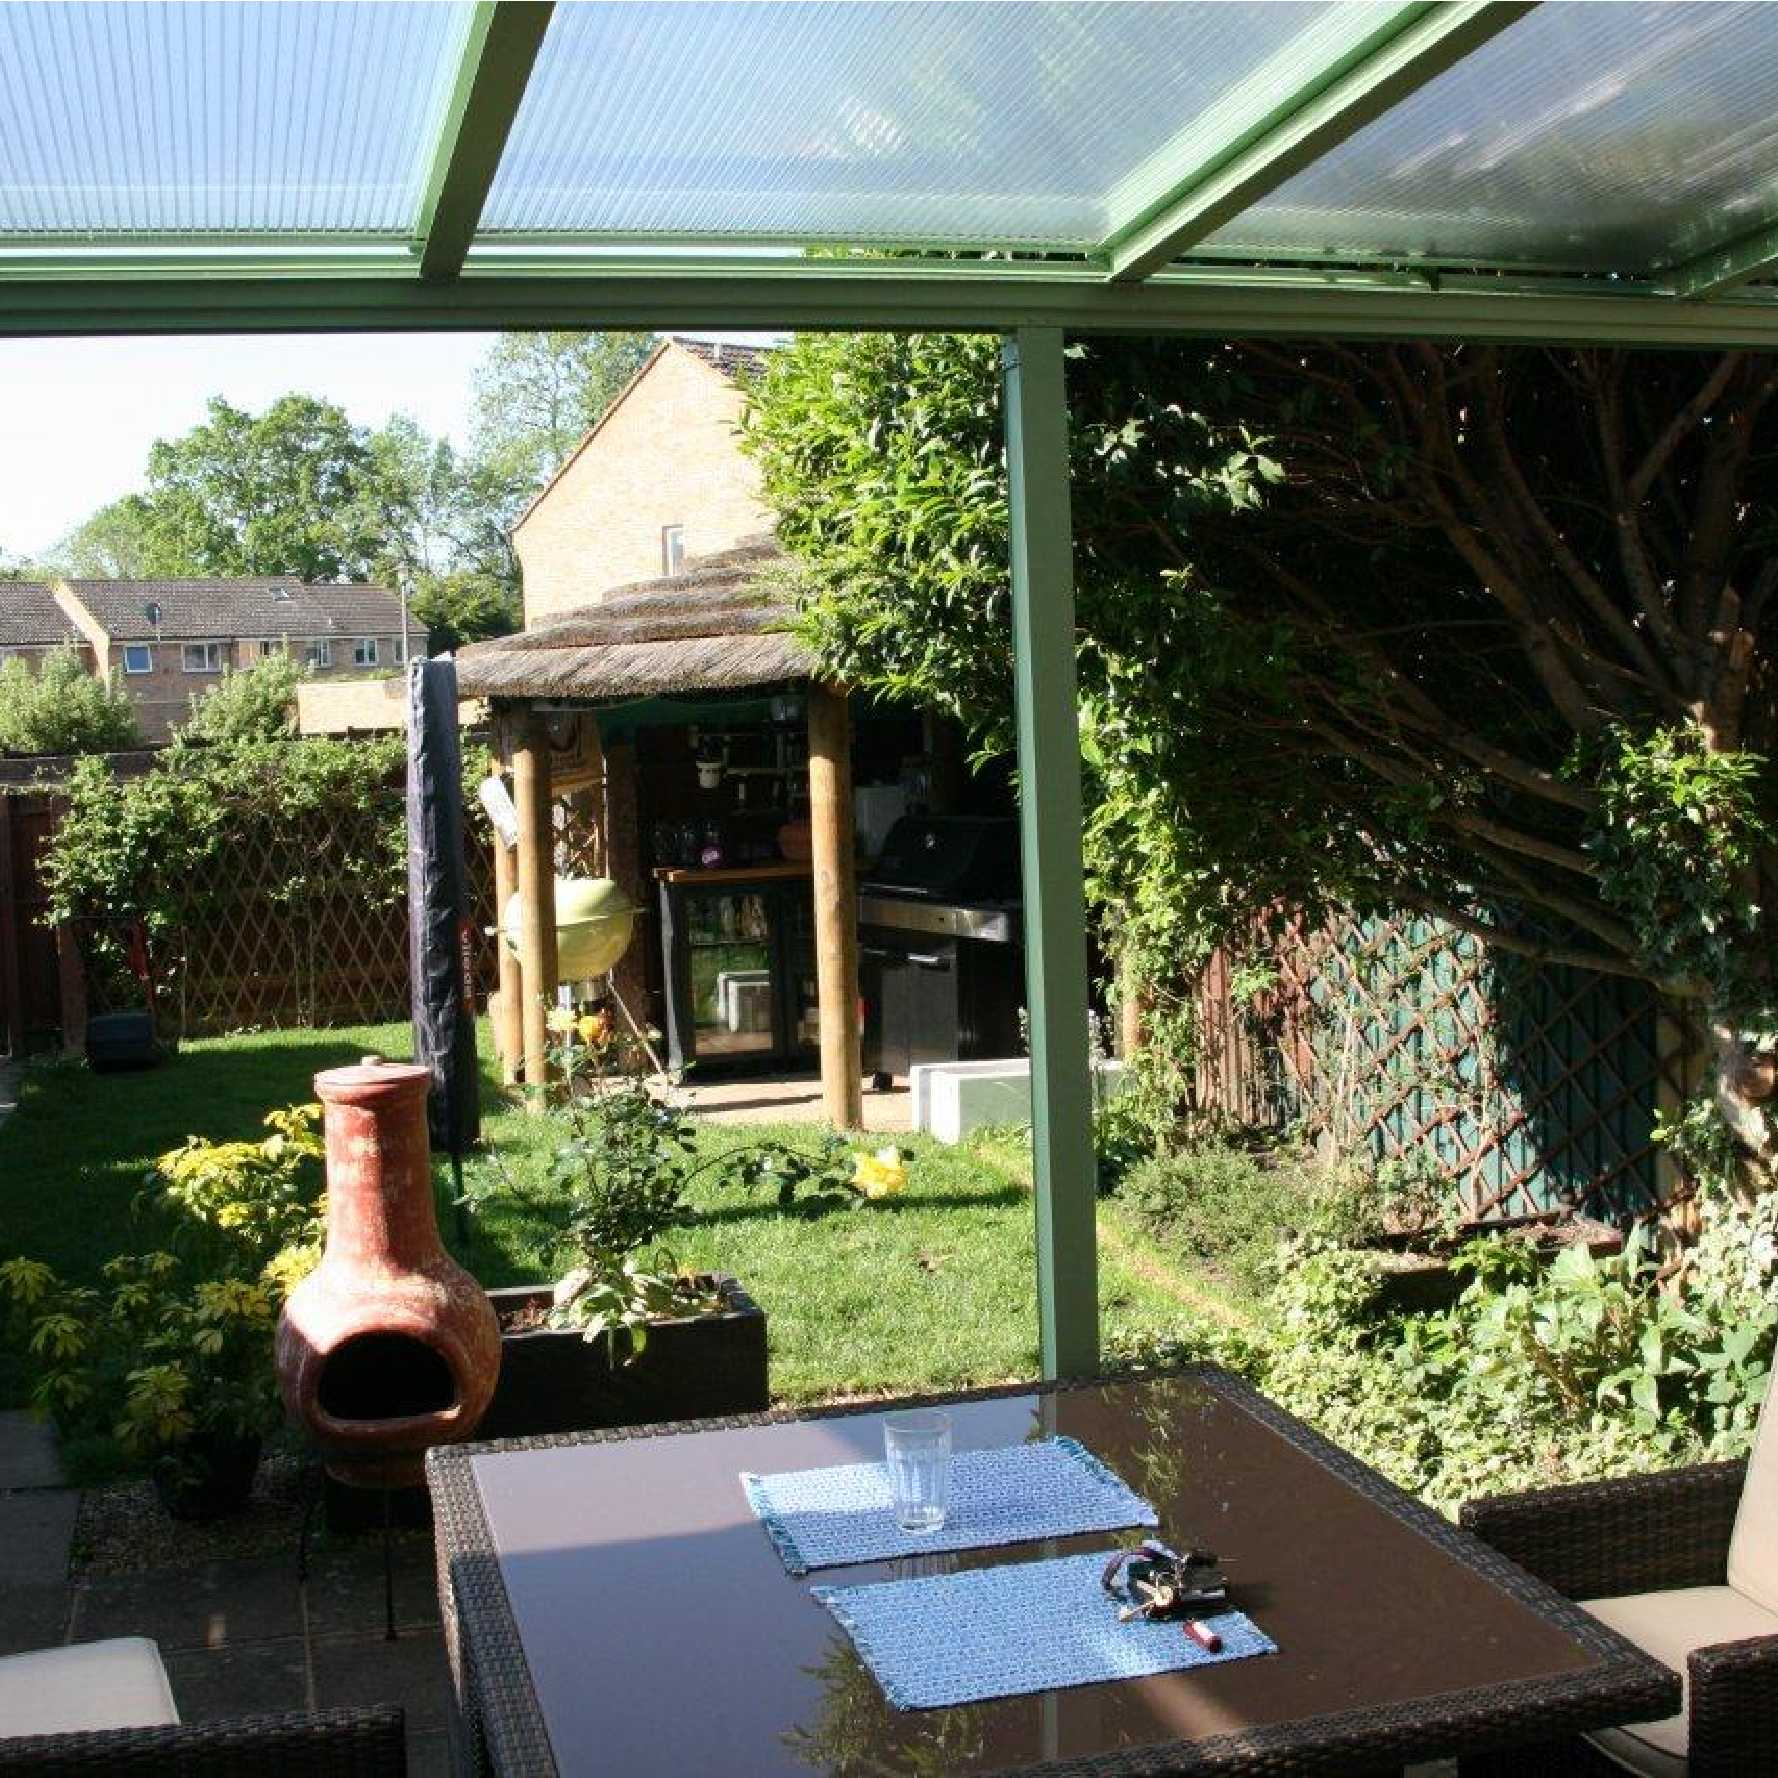 Affordable Omega Smart White Lean-To Canopy with 16mm Polycarbonate Glazing - 7.8m (W) x 4.0m (P), (4) Supporting Posts